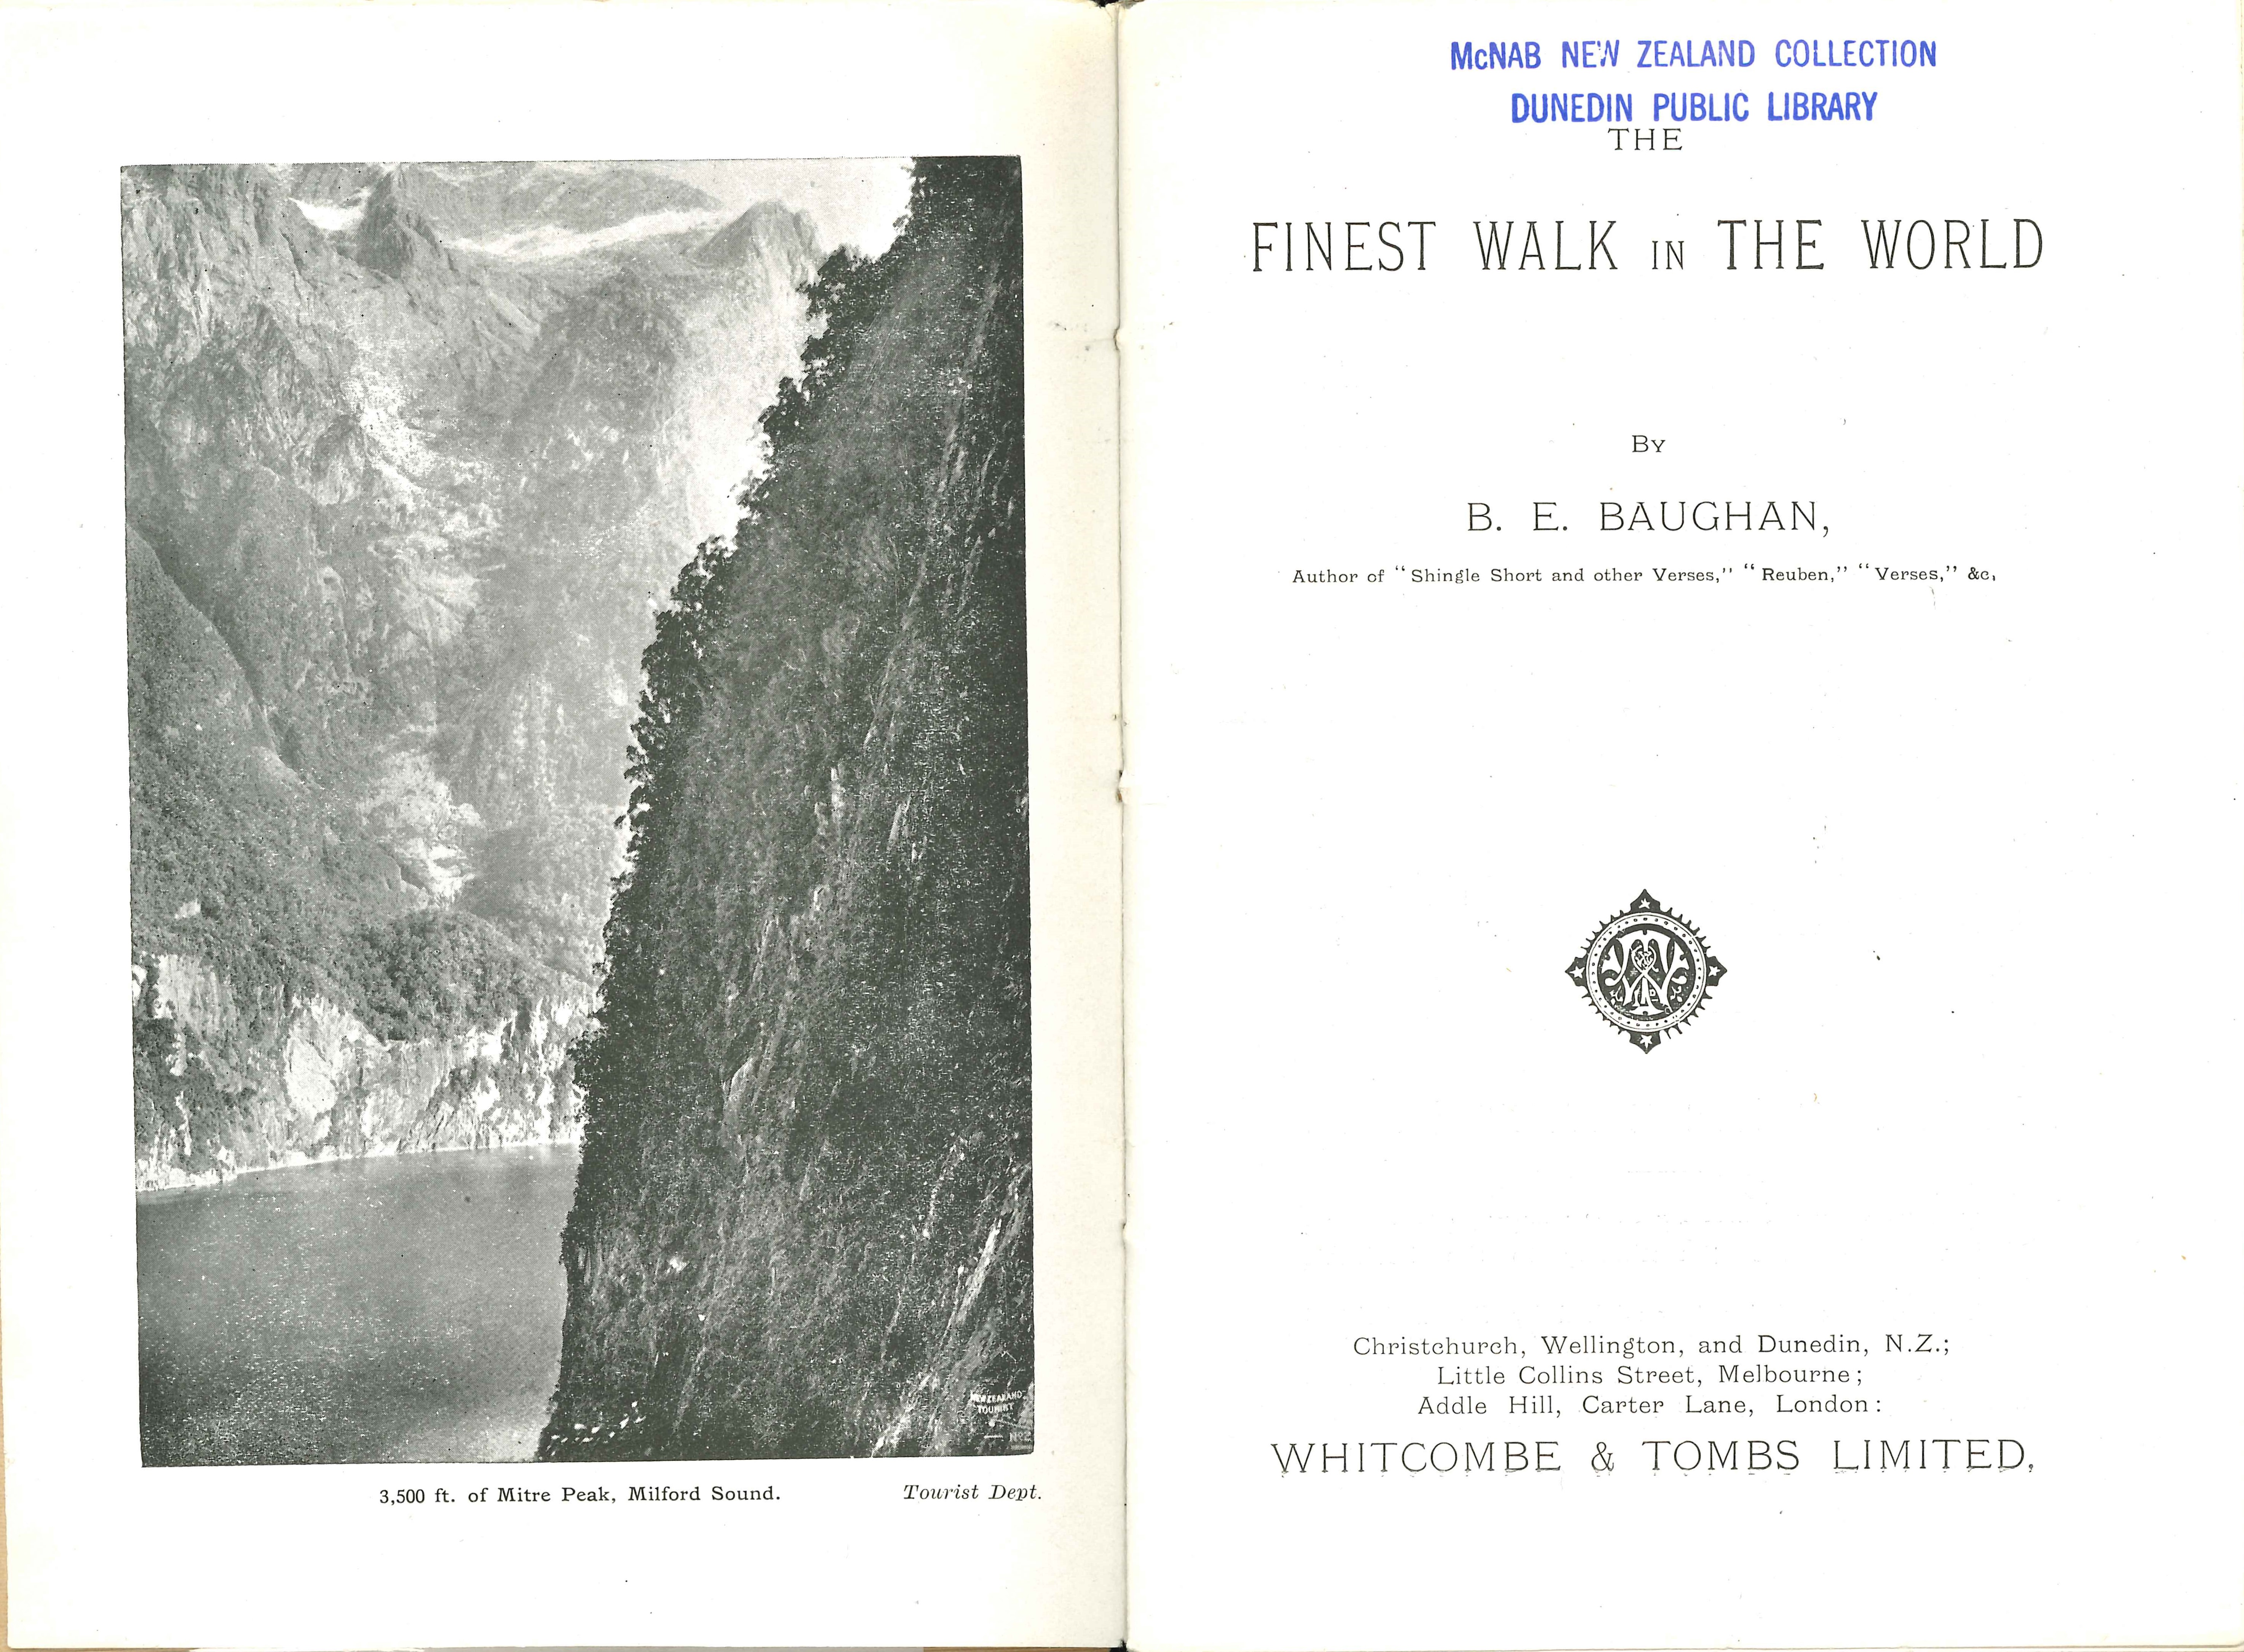 Blanche Baughan. The finest walk in the world. Second edition. Christchurch: Whitcombe & Tombs, [1913?]